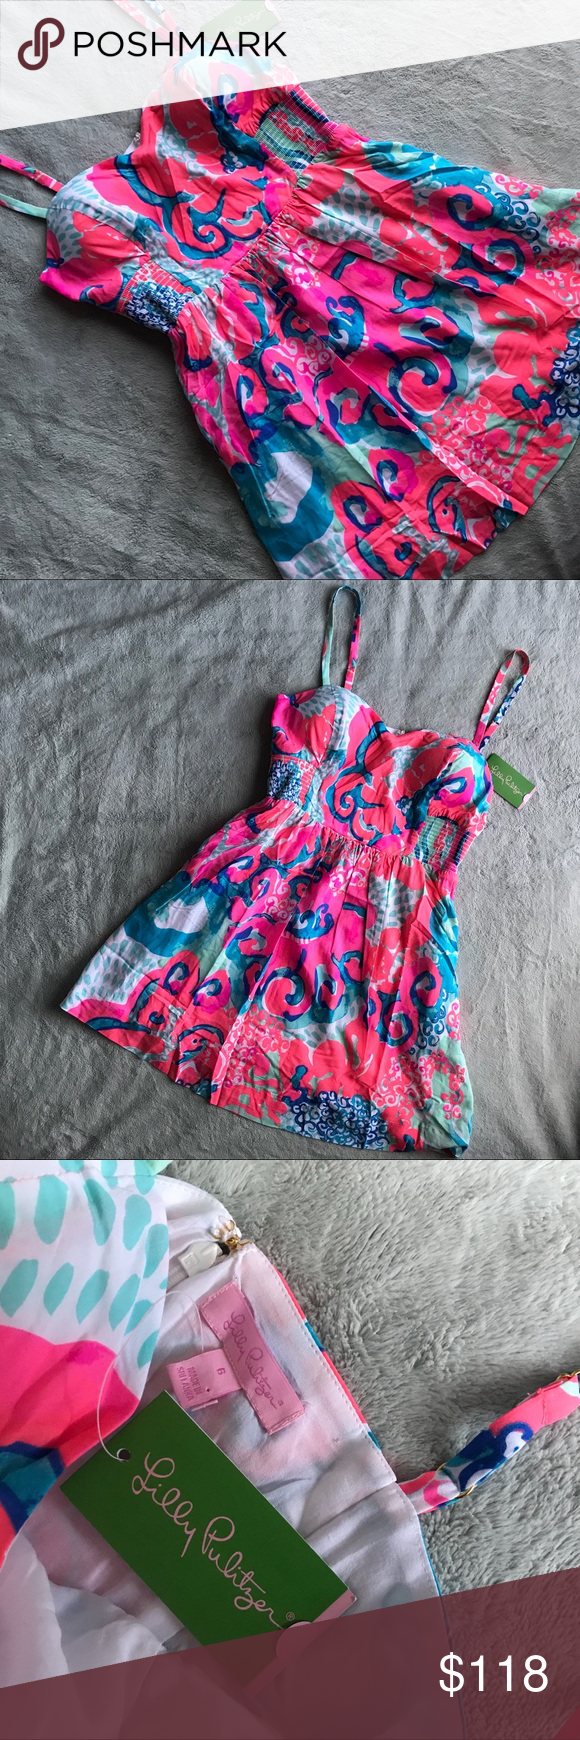 20ad7bf31c0a NWT Lilly Pulitzer Christine Dress I'm So Jelly Brand new, never worn.